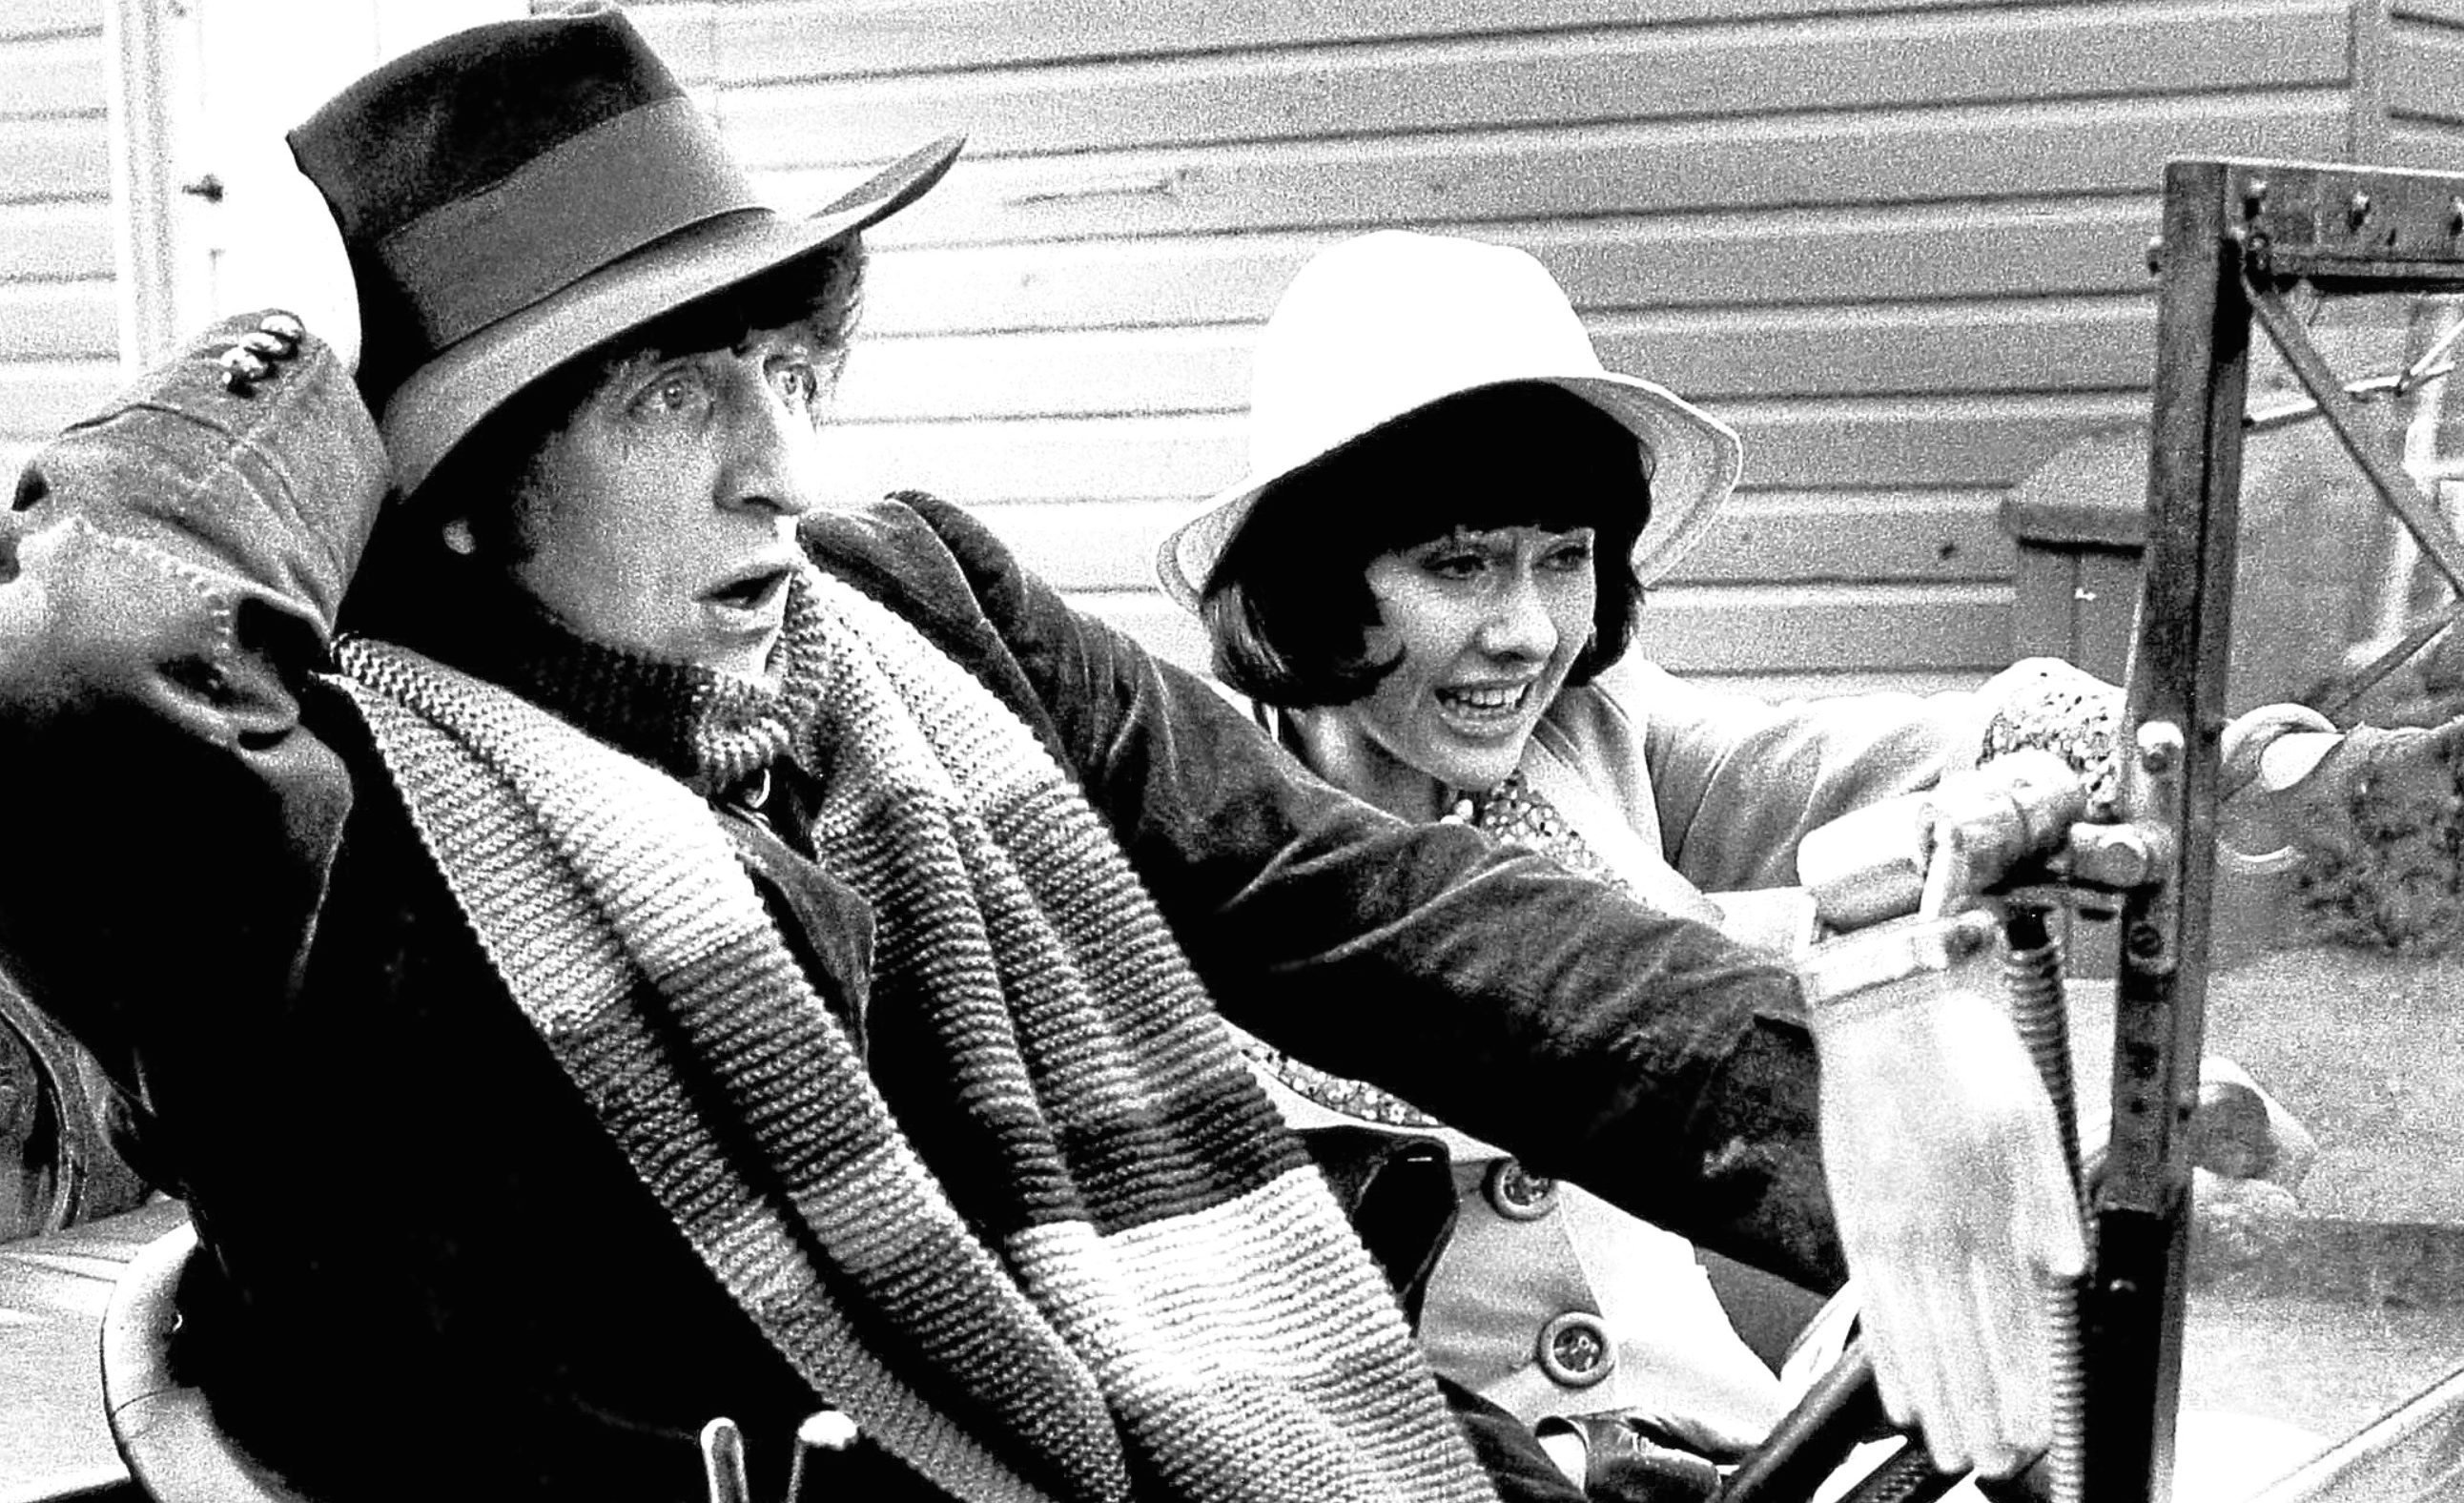 Tom Baker and Elisabeth Sladen in Doctor Who, 1974 (Allstar/BBC)